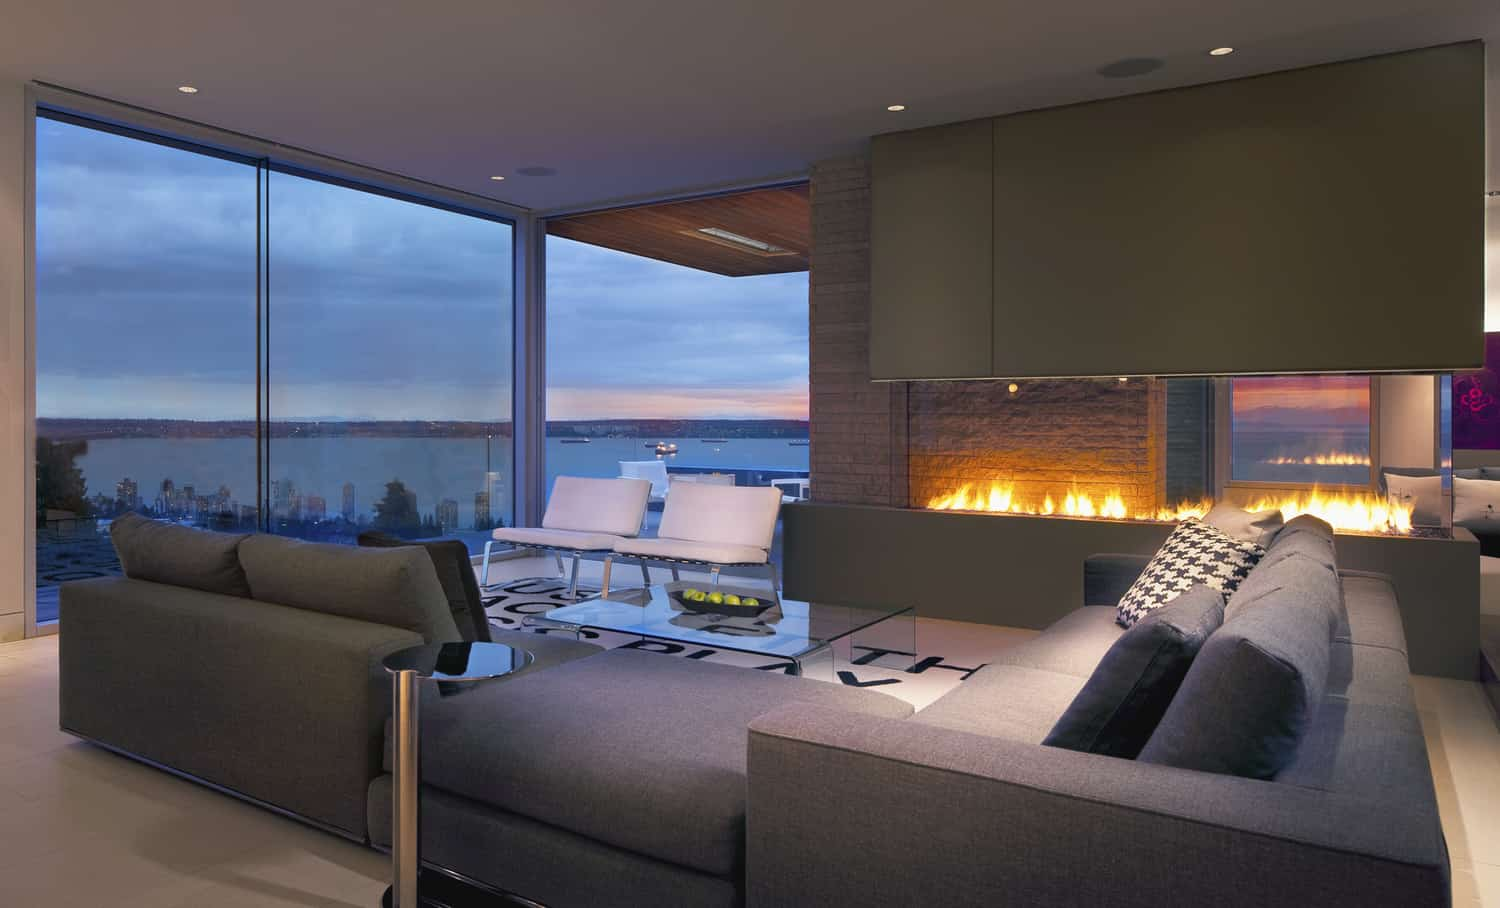 Living Room With A View Of The Ocean And Of The Fire. Western Living Room Ideas. Apartment Living Room Interior Design. Living Room Trail. Black And Orange Living Room Ideas. Declutter Living Room. Living Room Setting Ideas. Floating Wall Units For Living Room. Harvey Norman Living Room Furniture